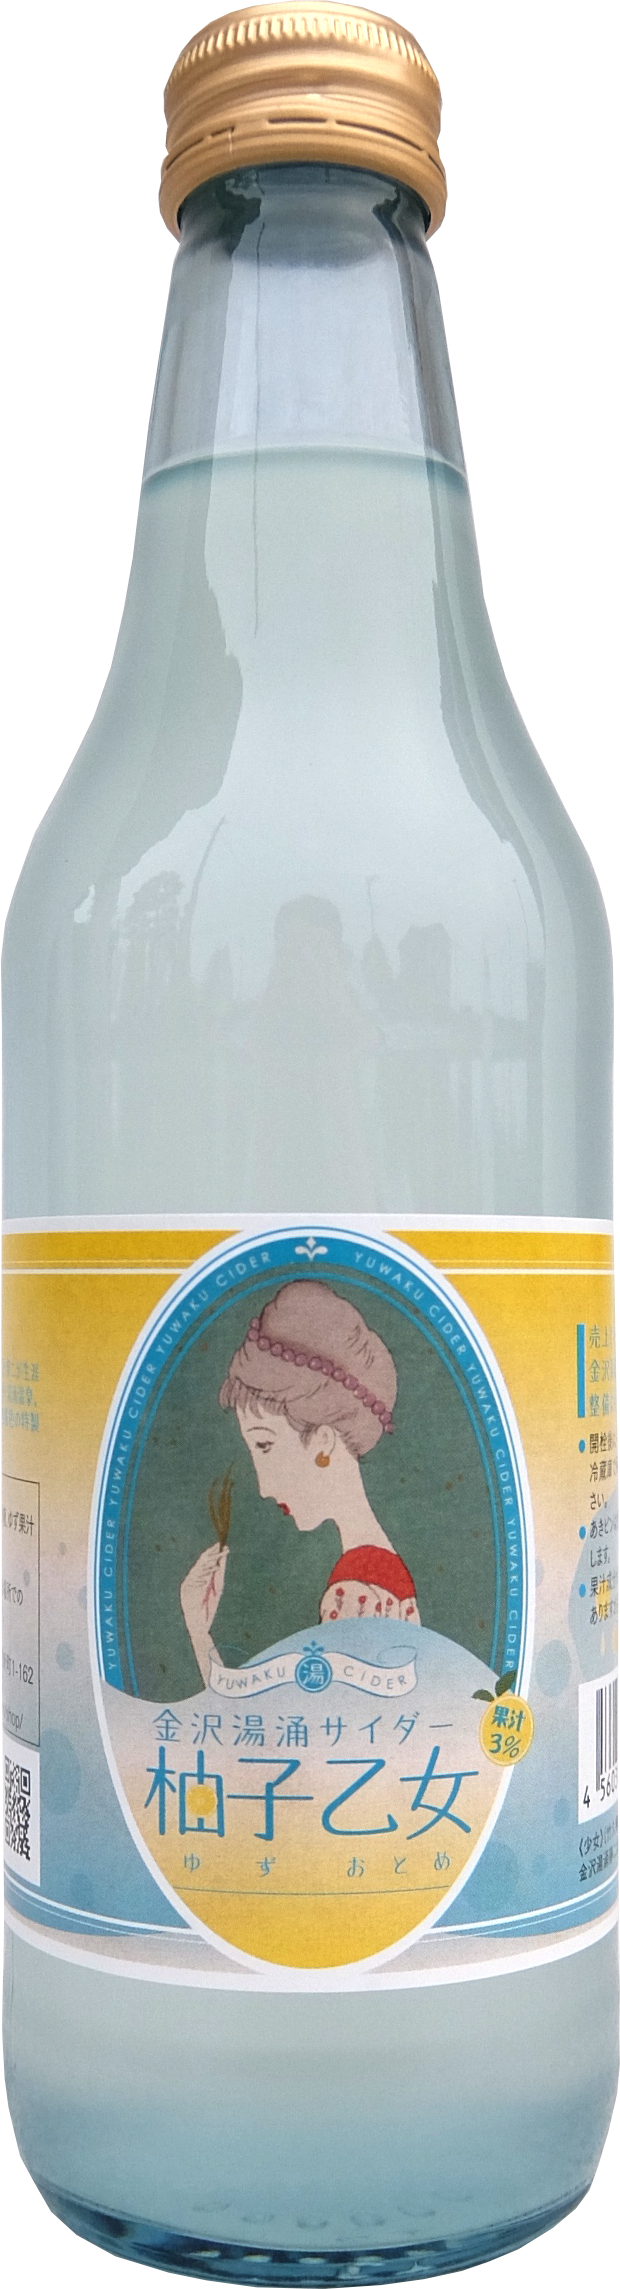 Yuzu Soda 340ml